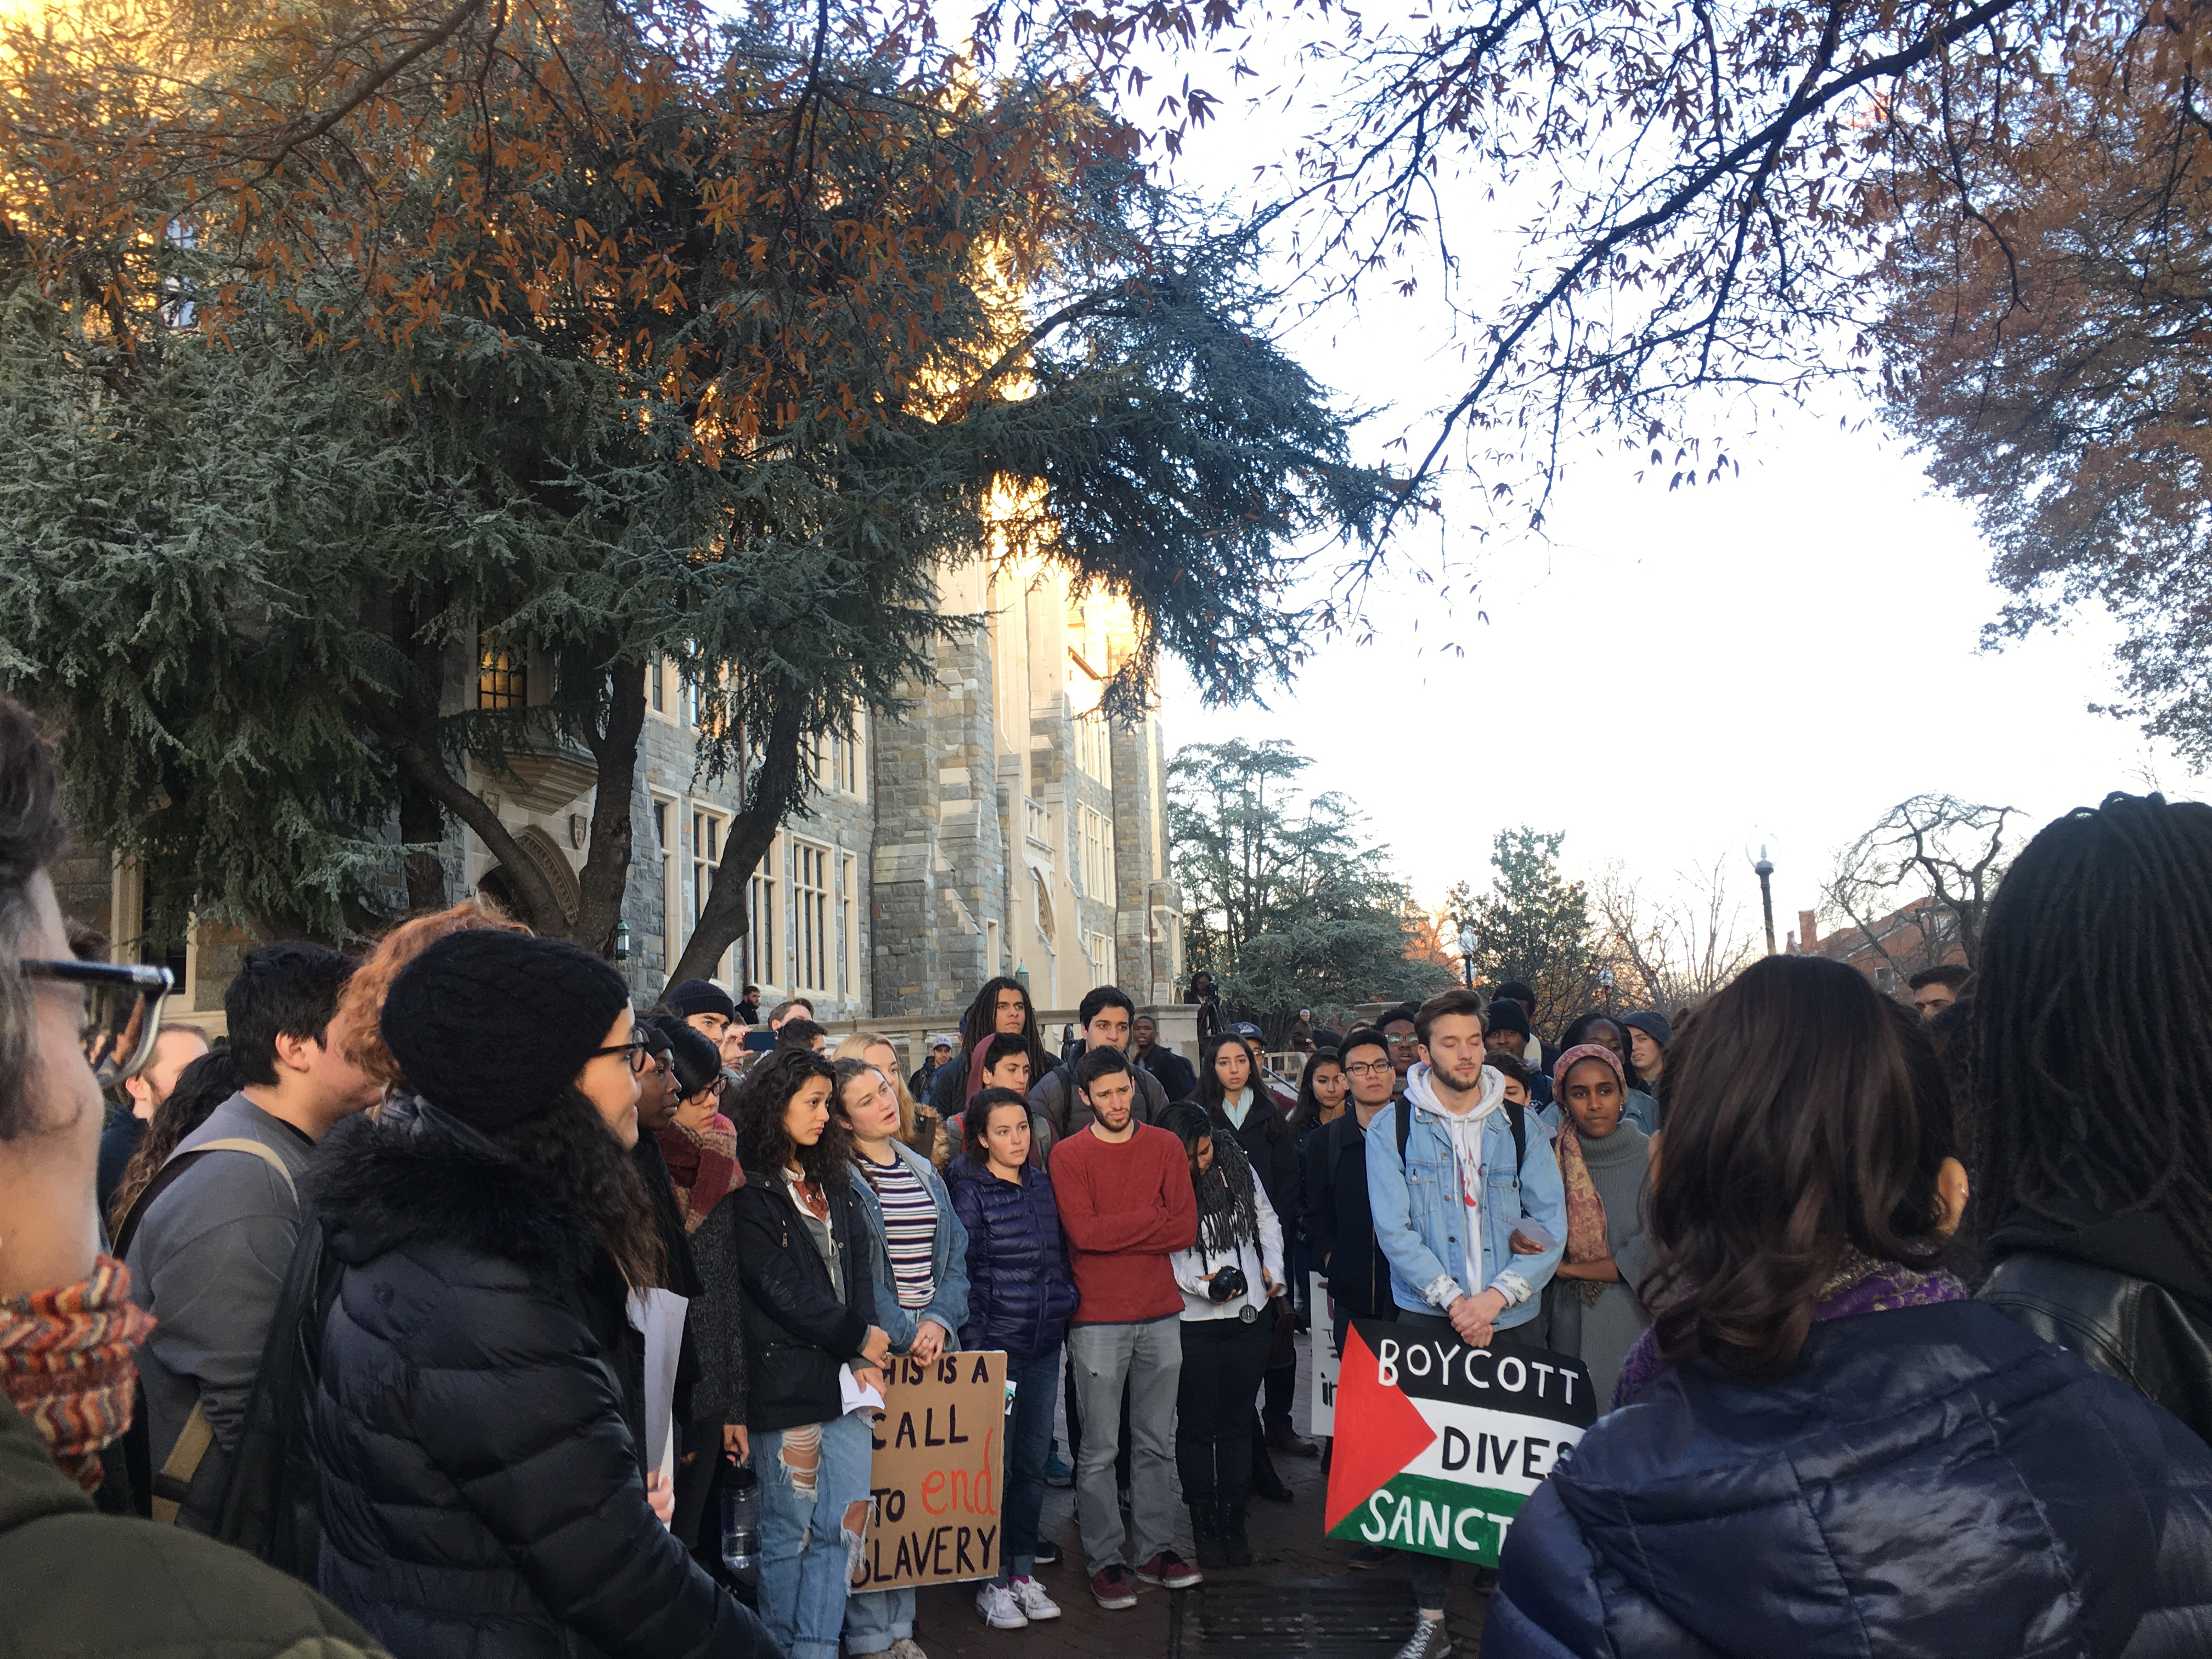 JEANINE SANTUCCI/THE HOYA Students gathered in Red Square on Wednesday before marching to University President John J. DeGioia's office to deliver a letter requesting transparency on the university's endowment.